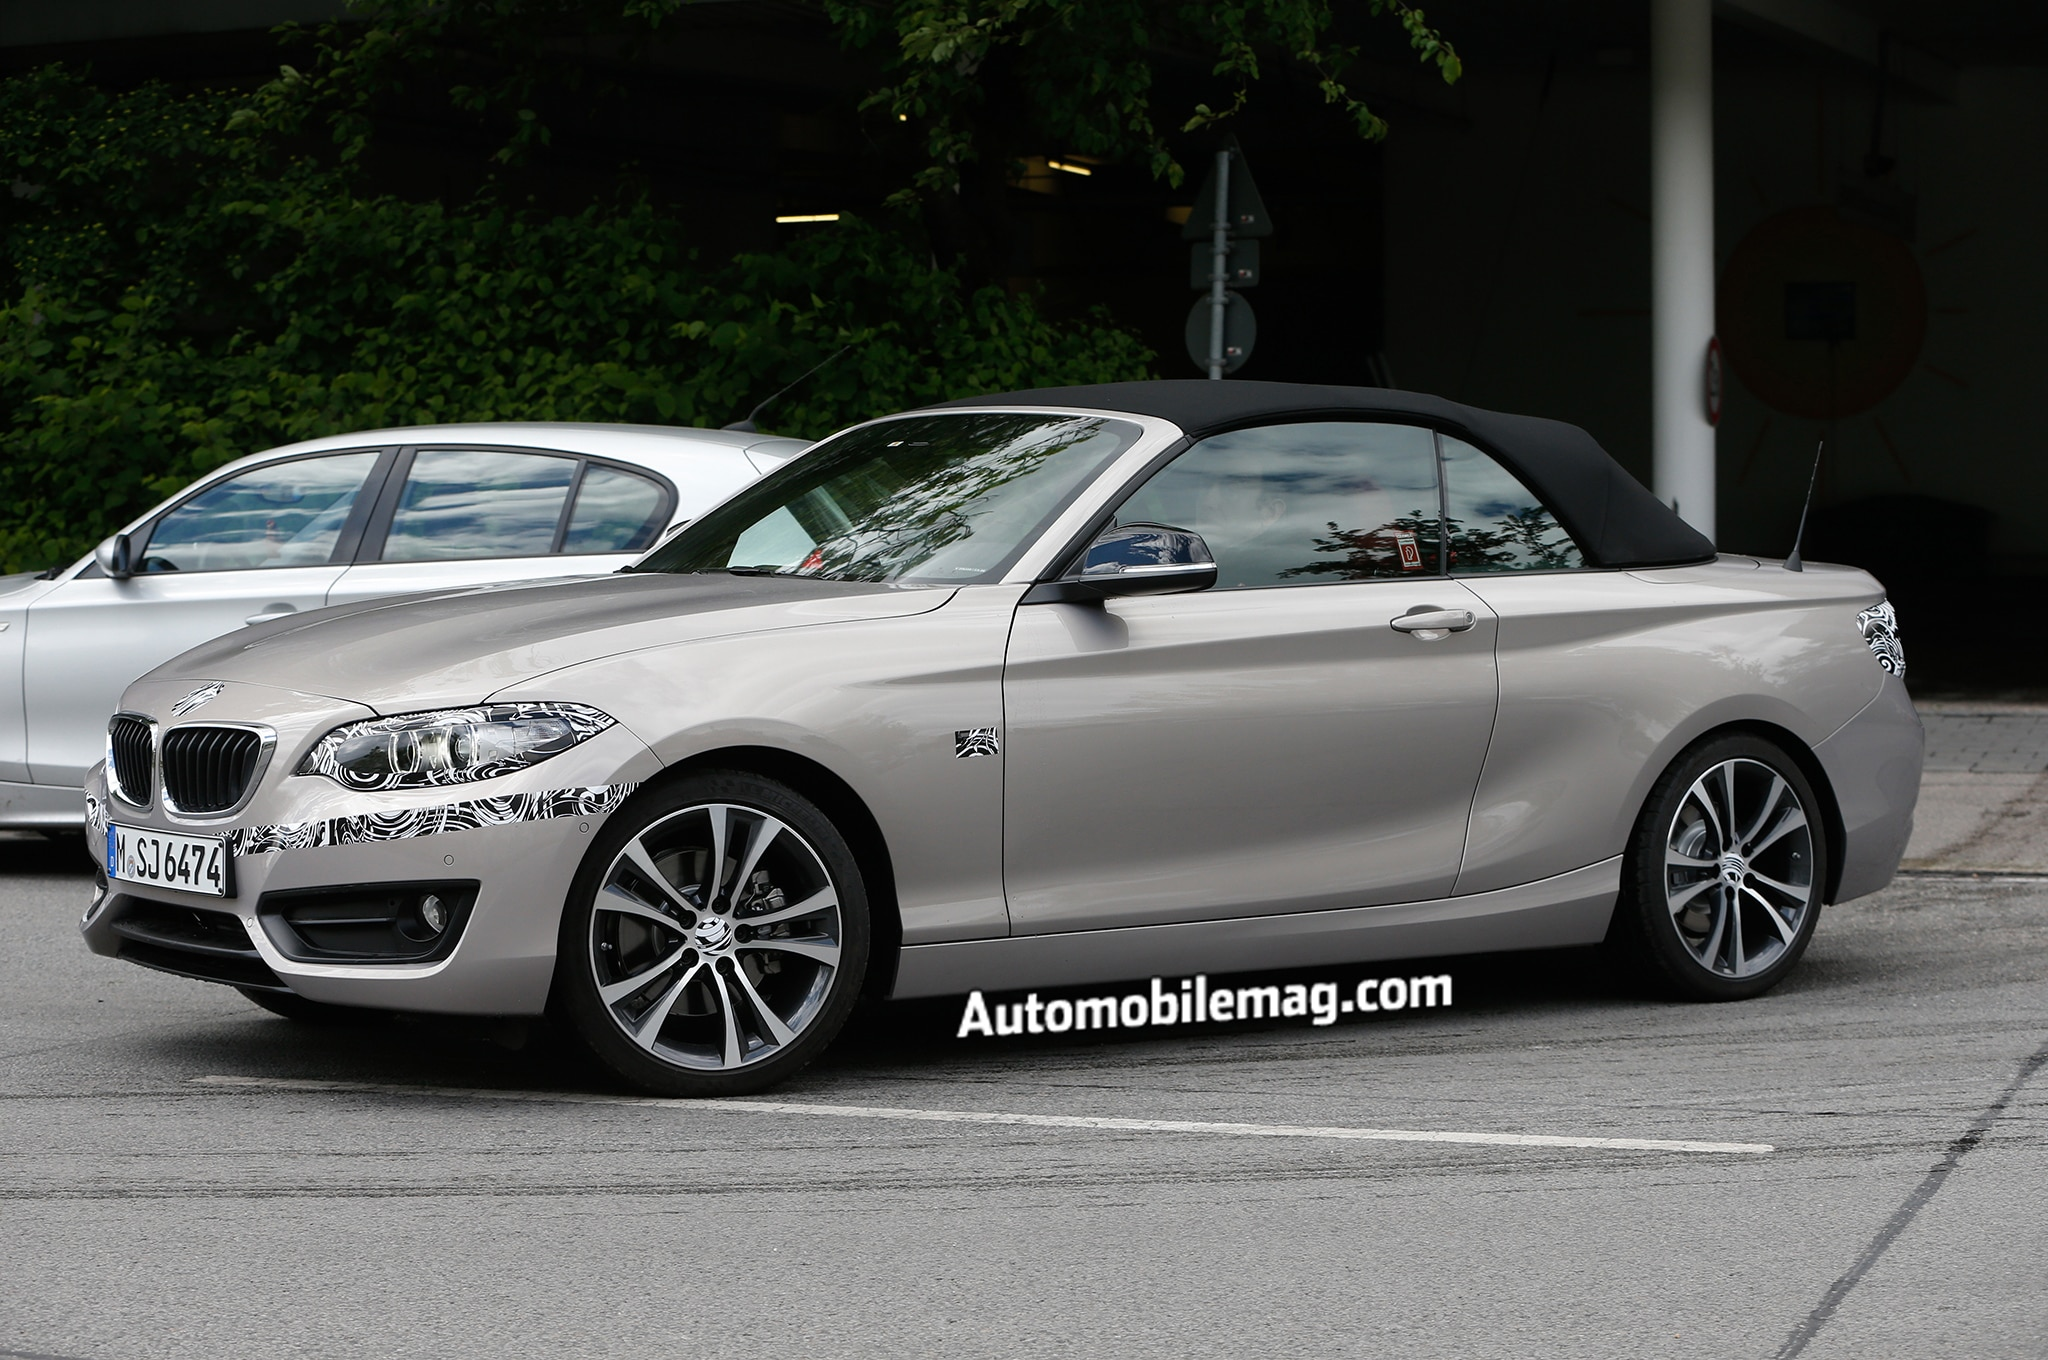 2015 Bmw 2 Series Convertible Spied Front Three Quarter 21